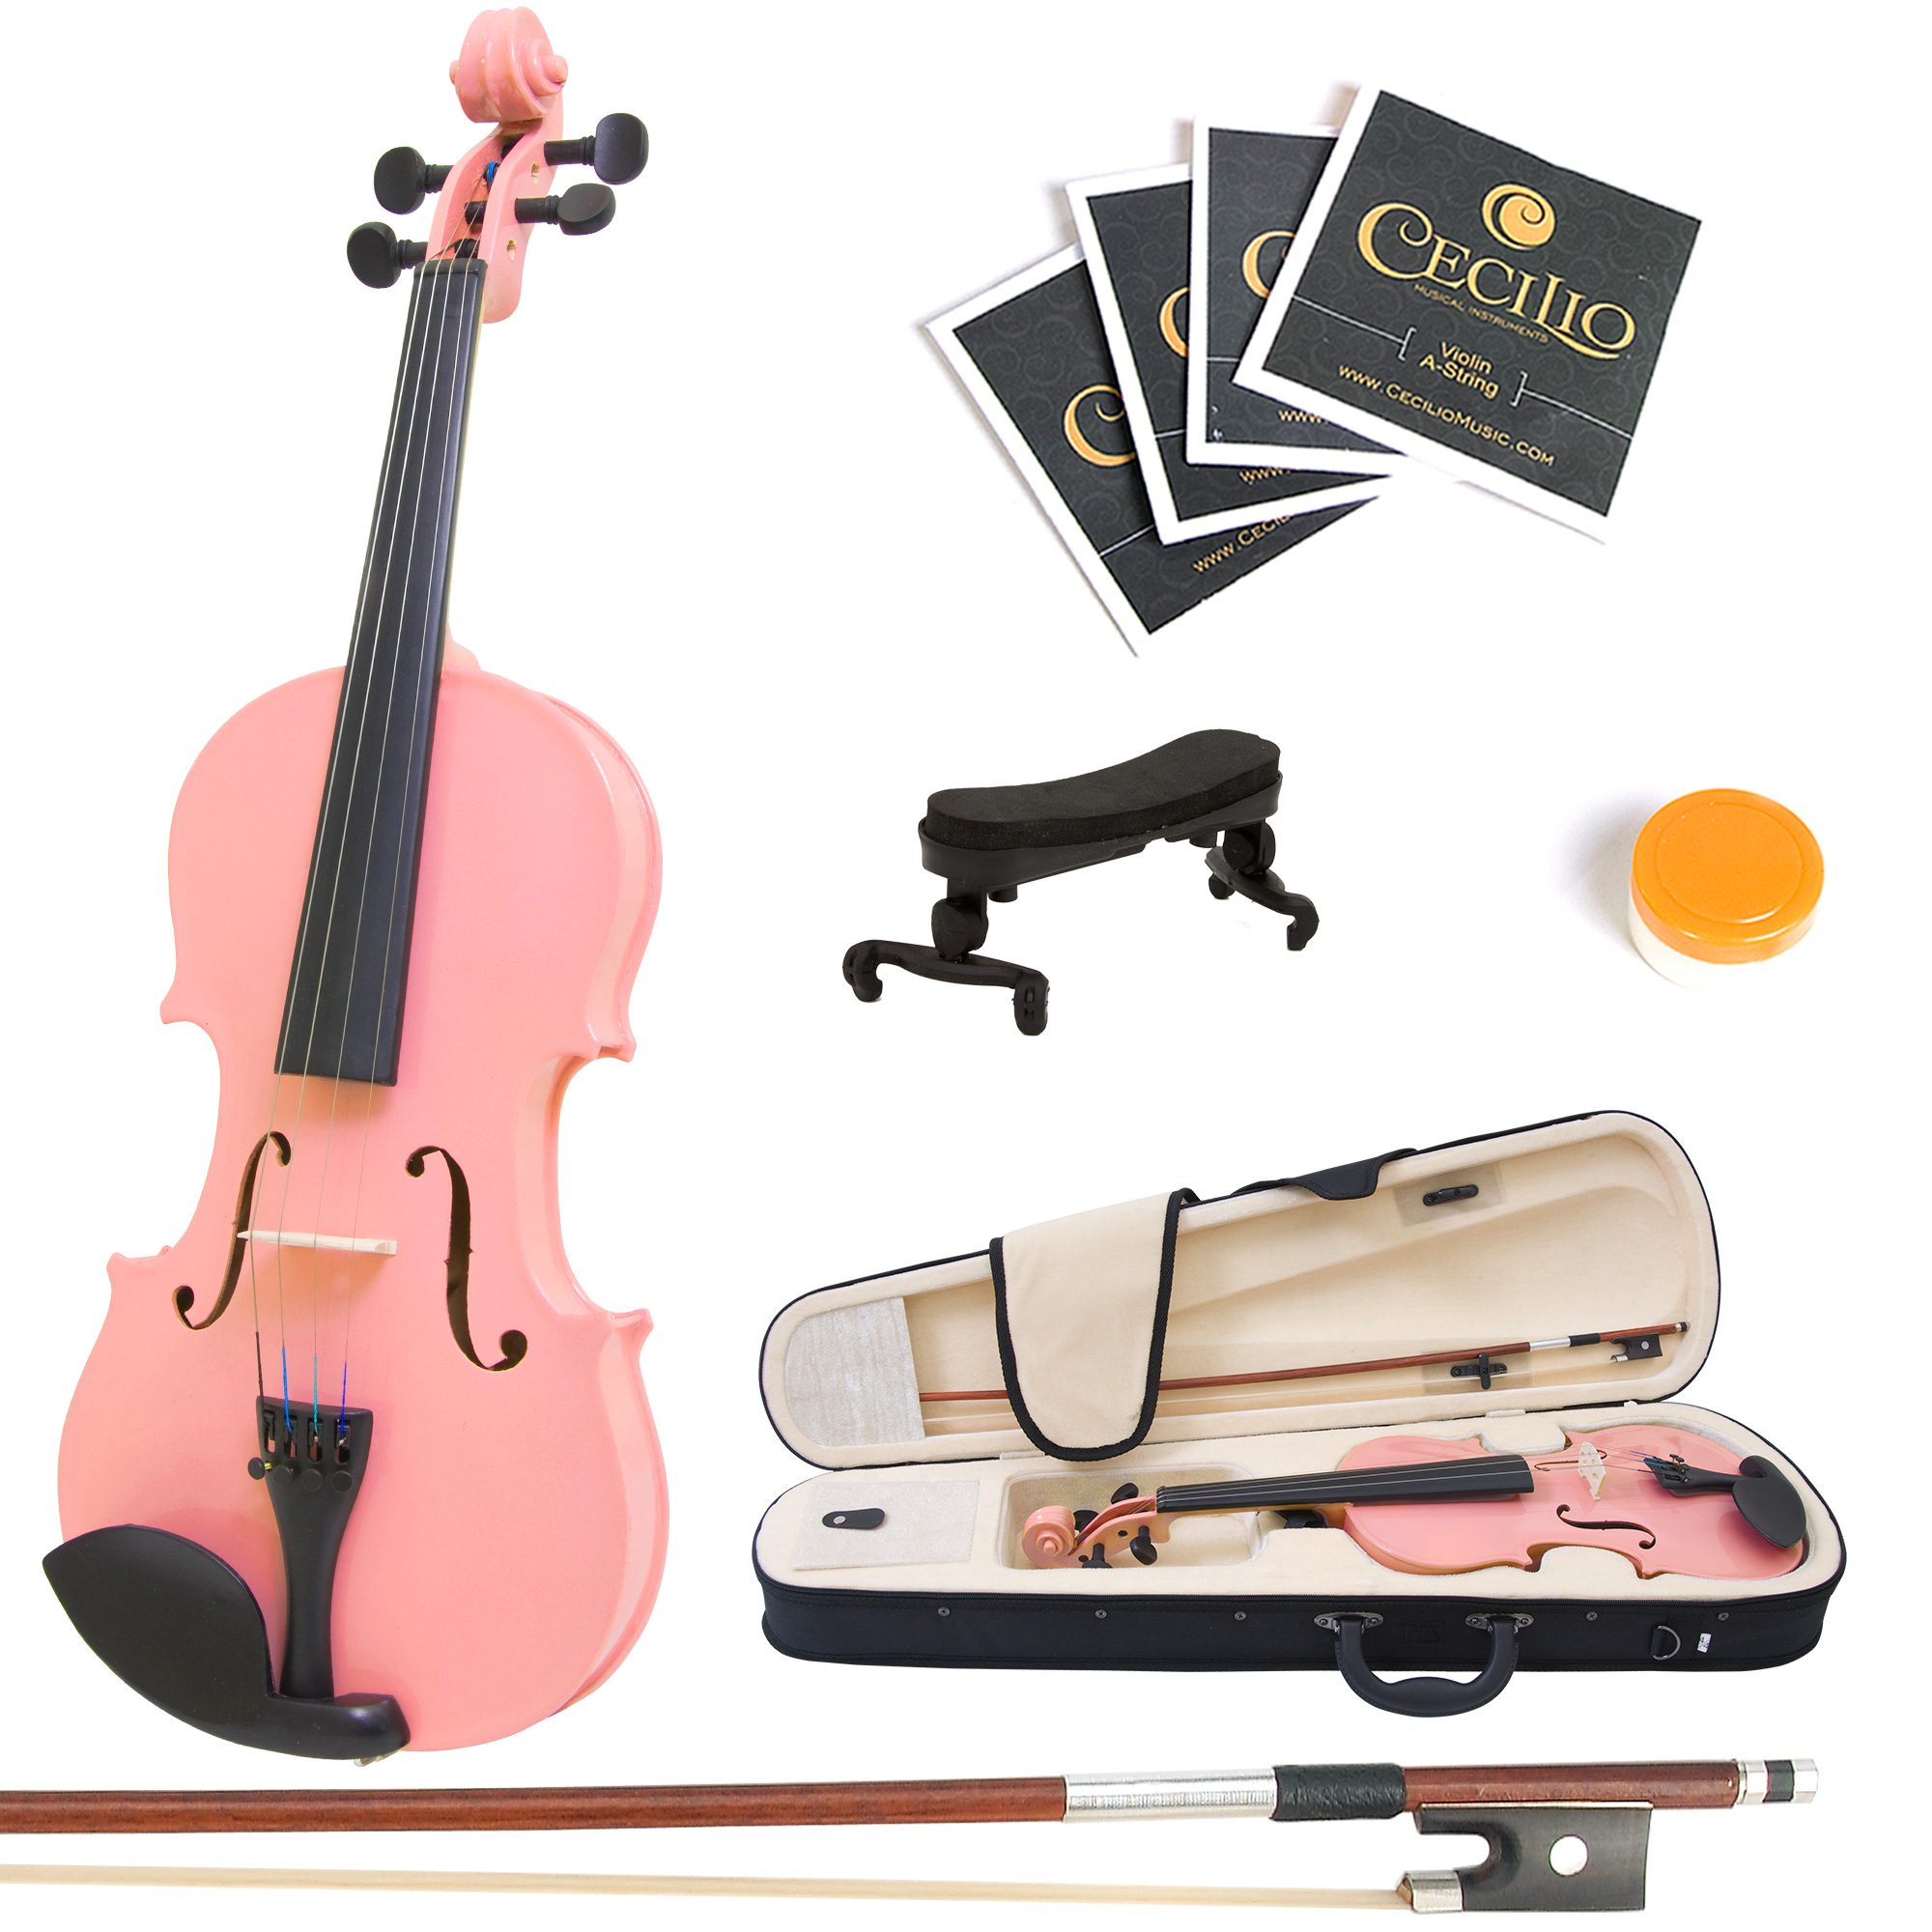 Mendini by Cecilio Size 1/4 MV-Pink Handcrafted Solid Wood Violin with 1 Year Warranty, Shoulder Rest, Bow, Rosin, Extra Set Strings, 2 Bridges & Case, Metallic Pink